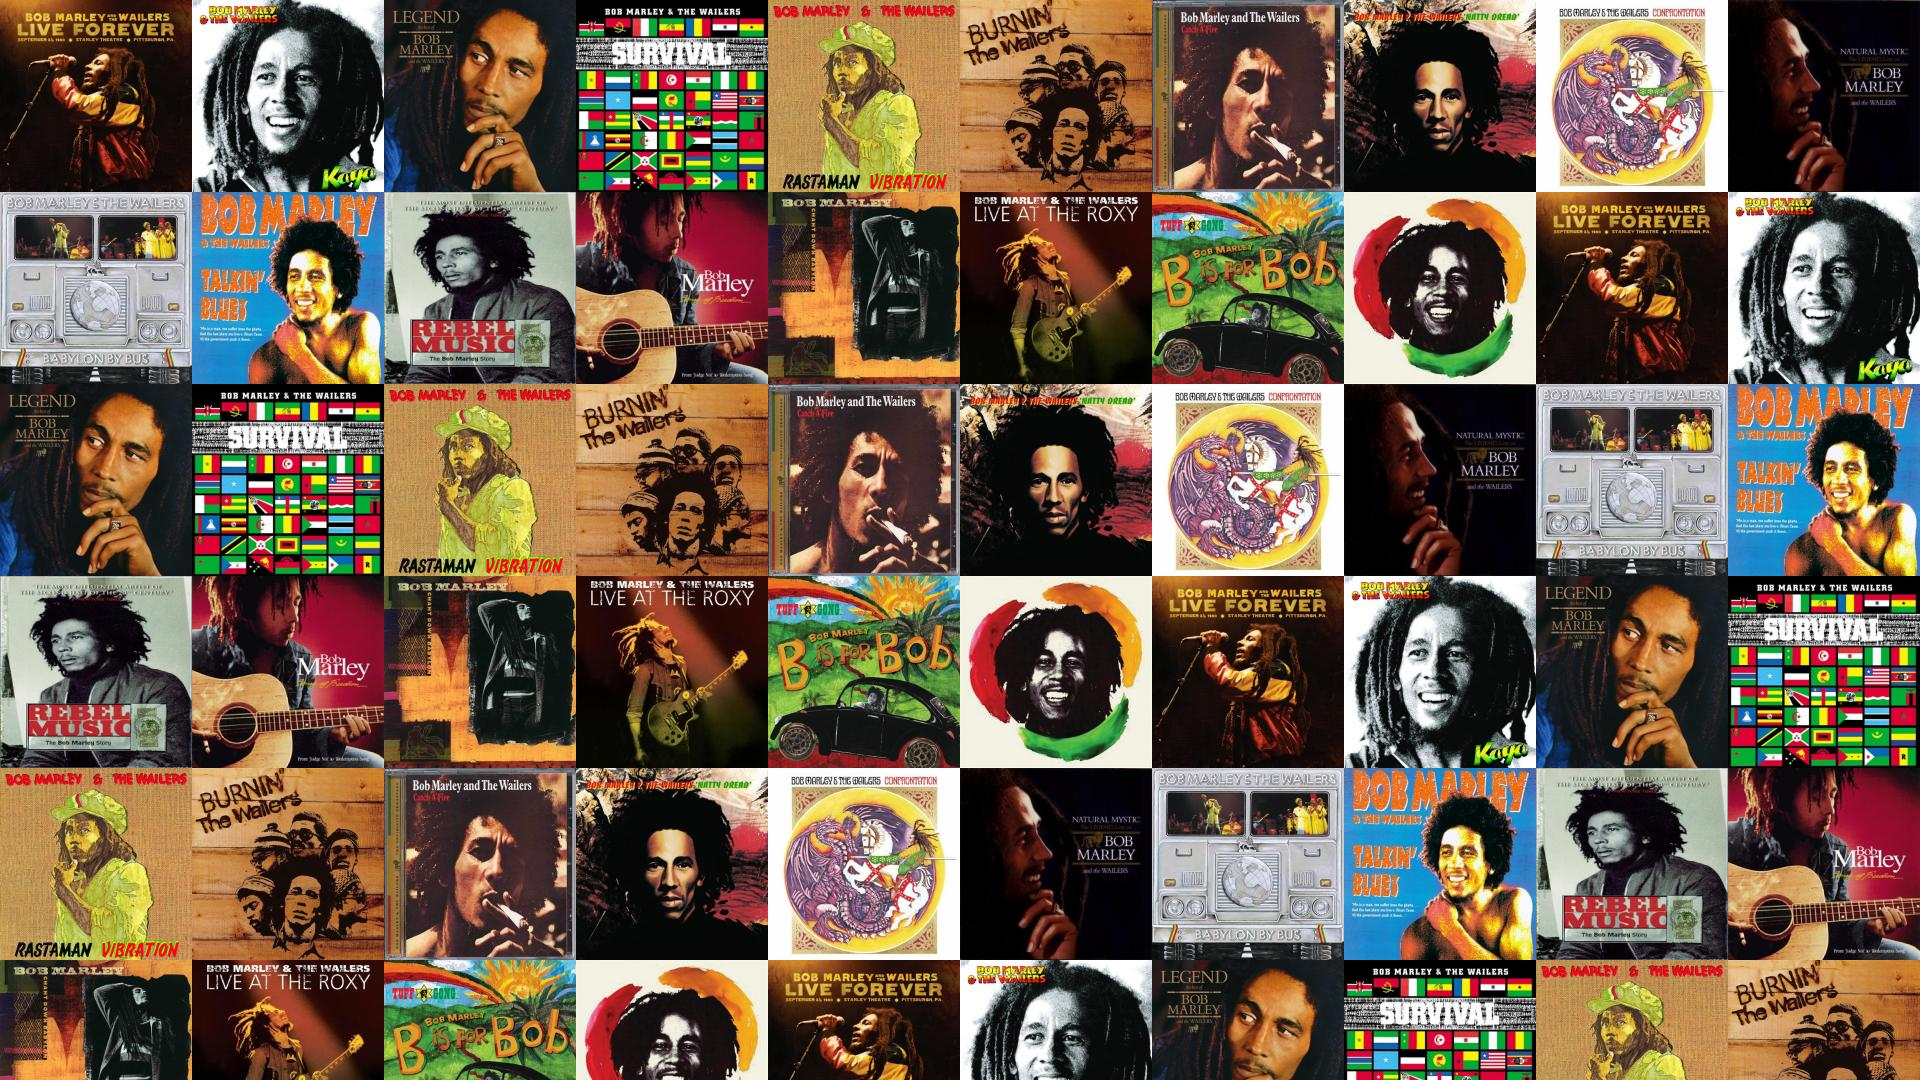 free wallpaper with images of bob marley uprising bob marley kaya bob ...